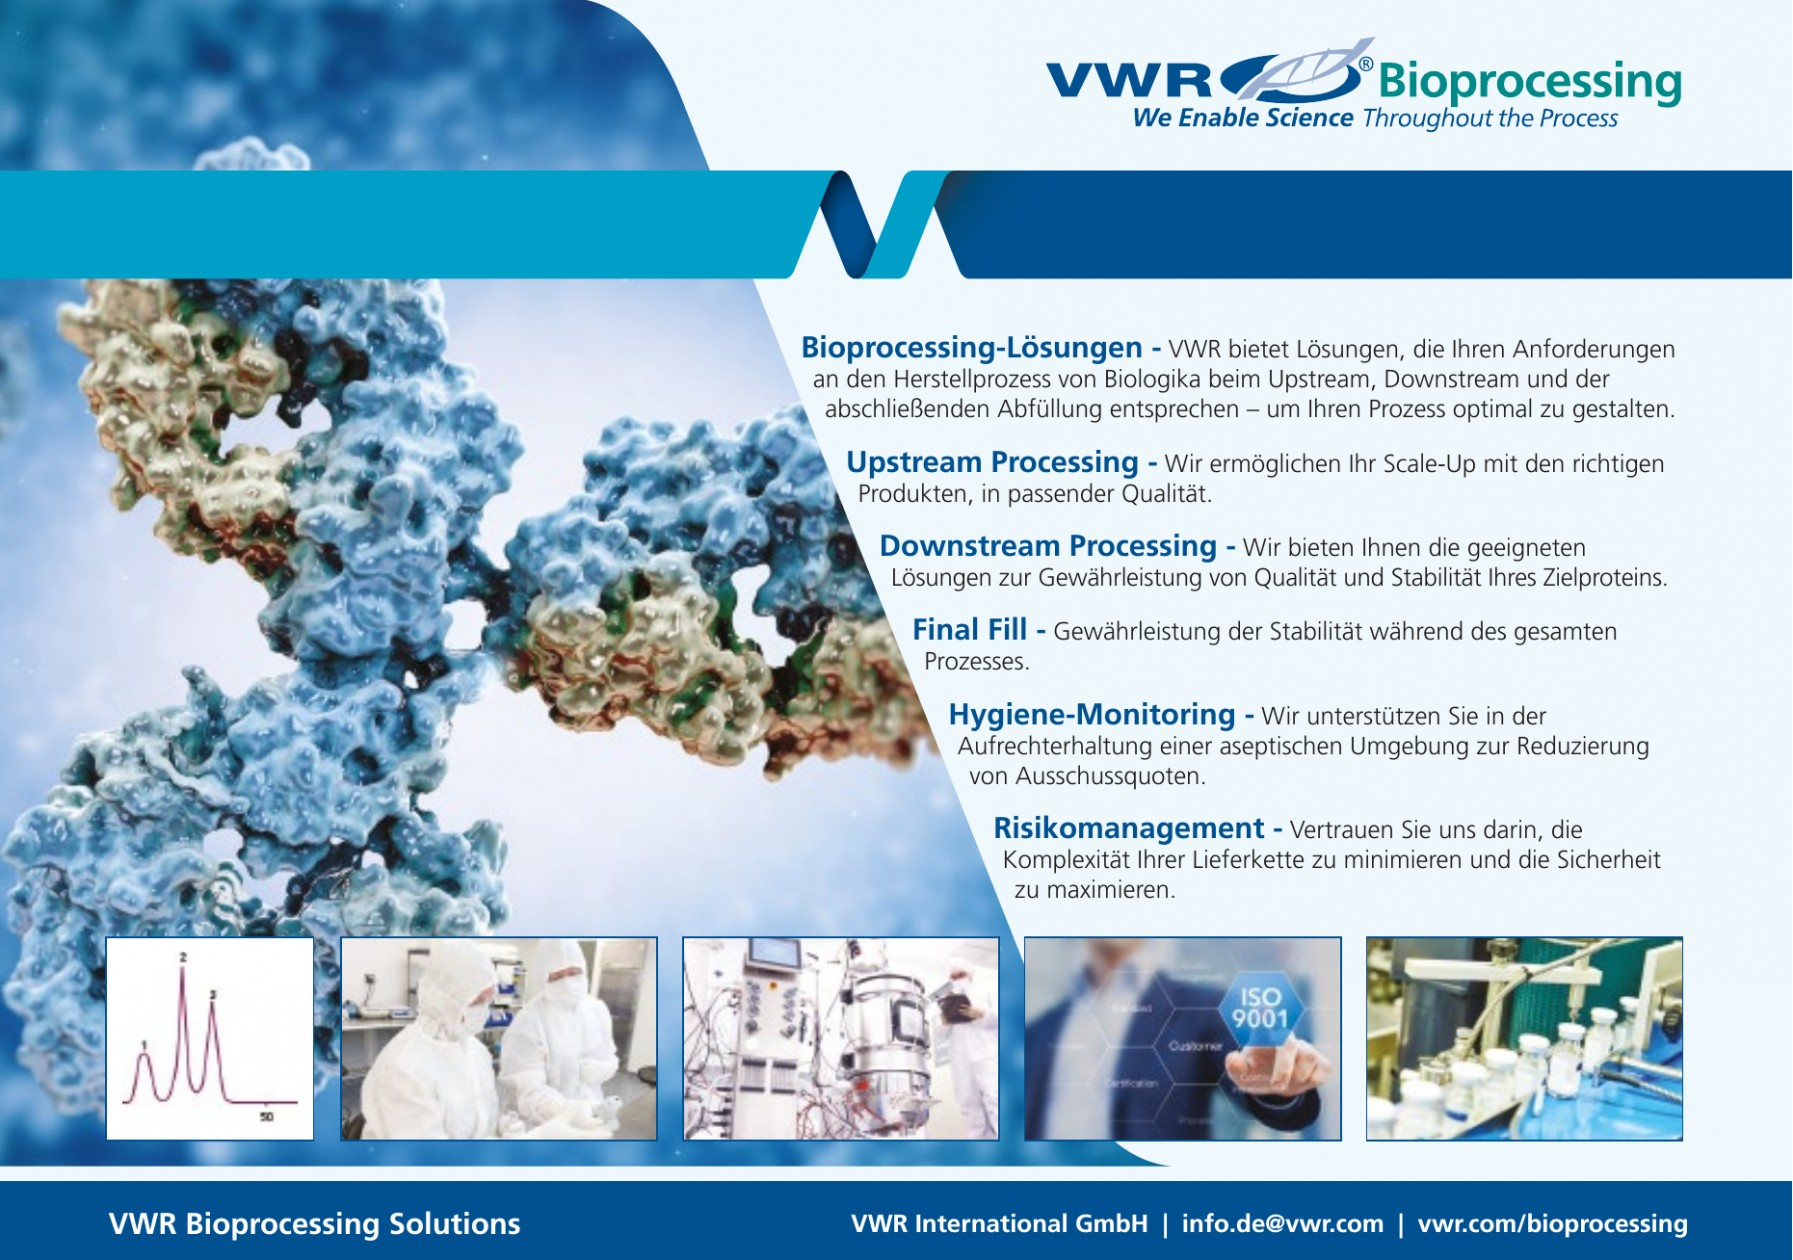 VWR Bioprocessing Solutions